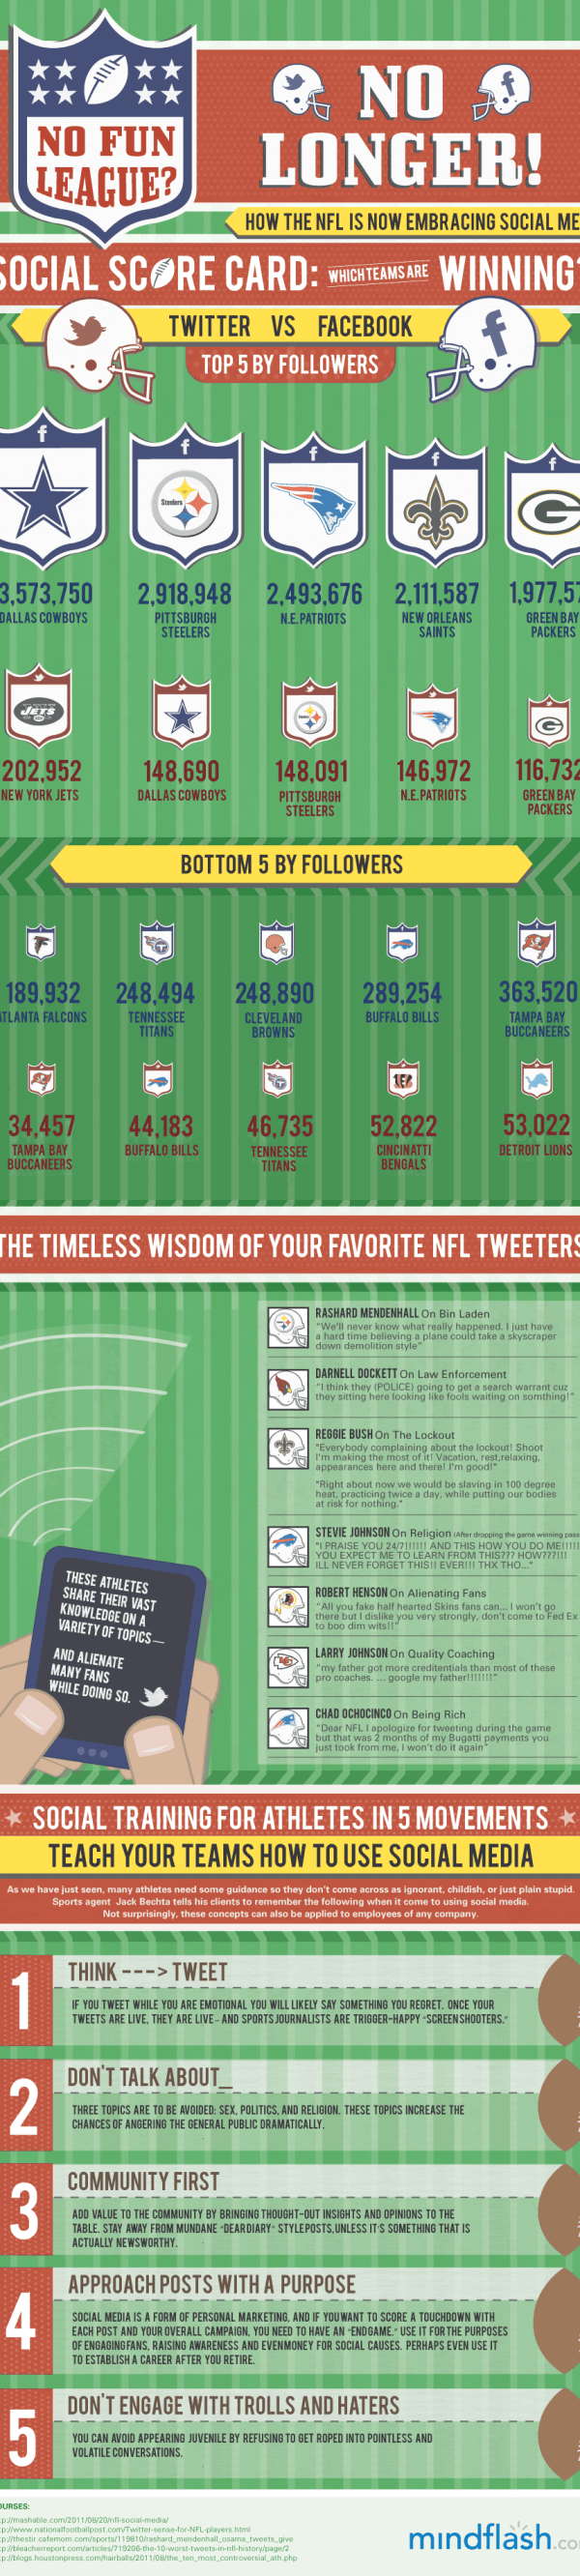 The NFL Finally Embraces Social Media [infographic] 1